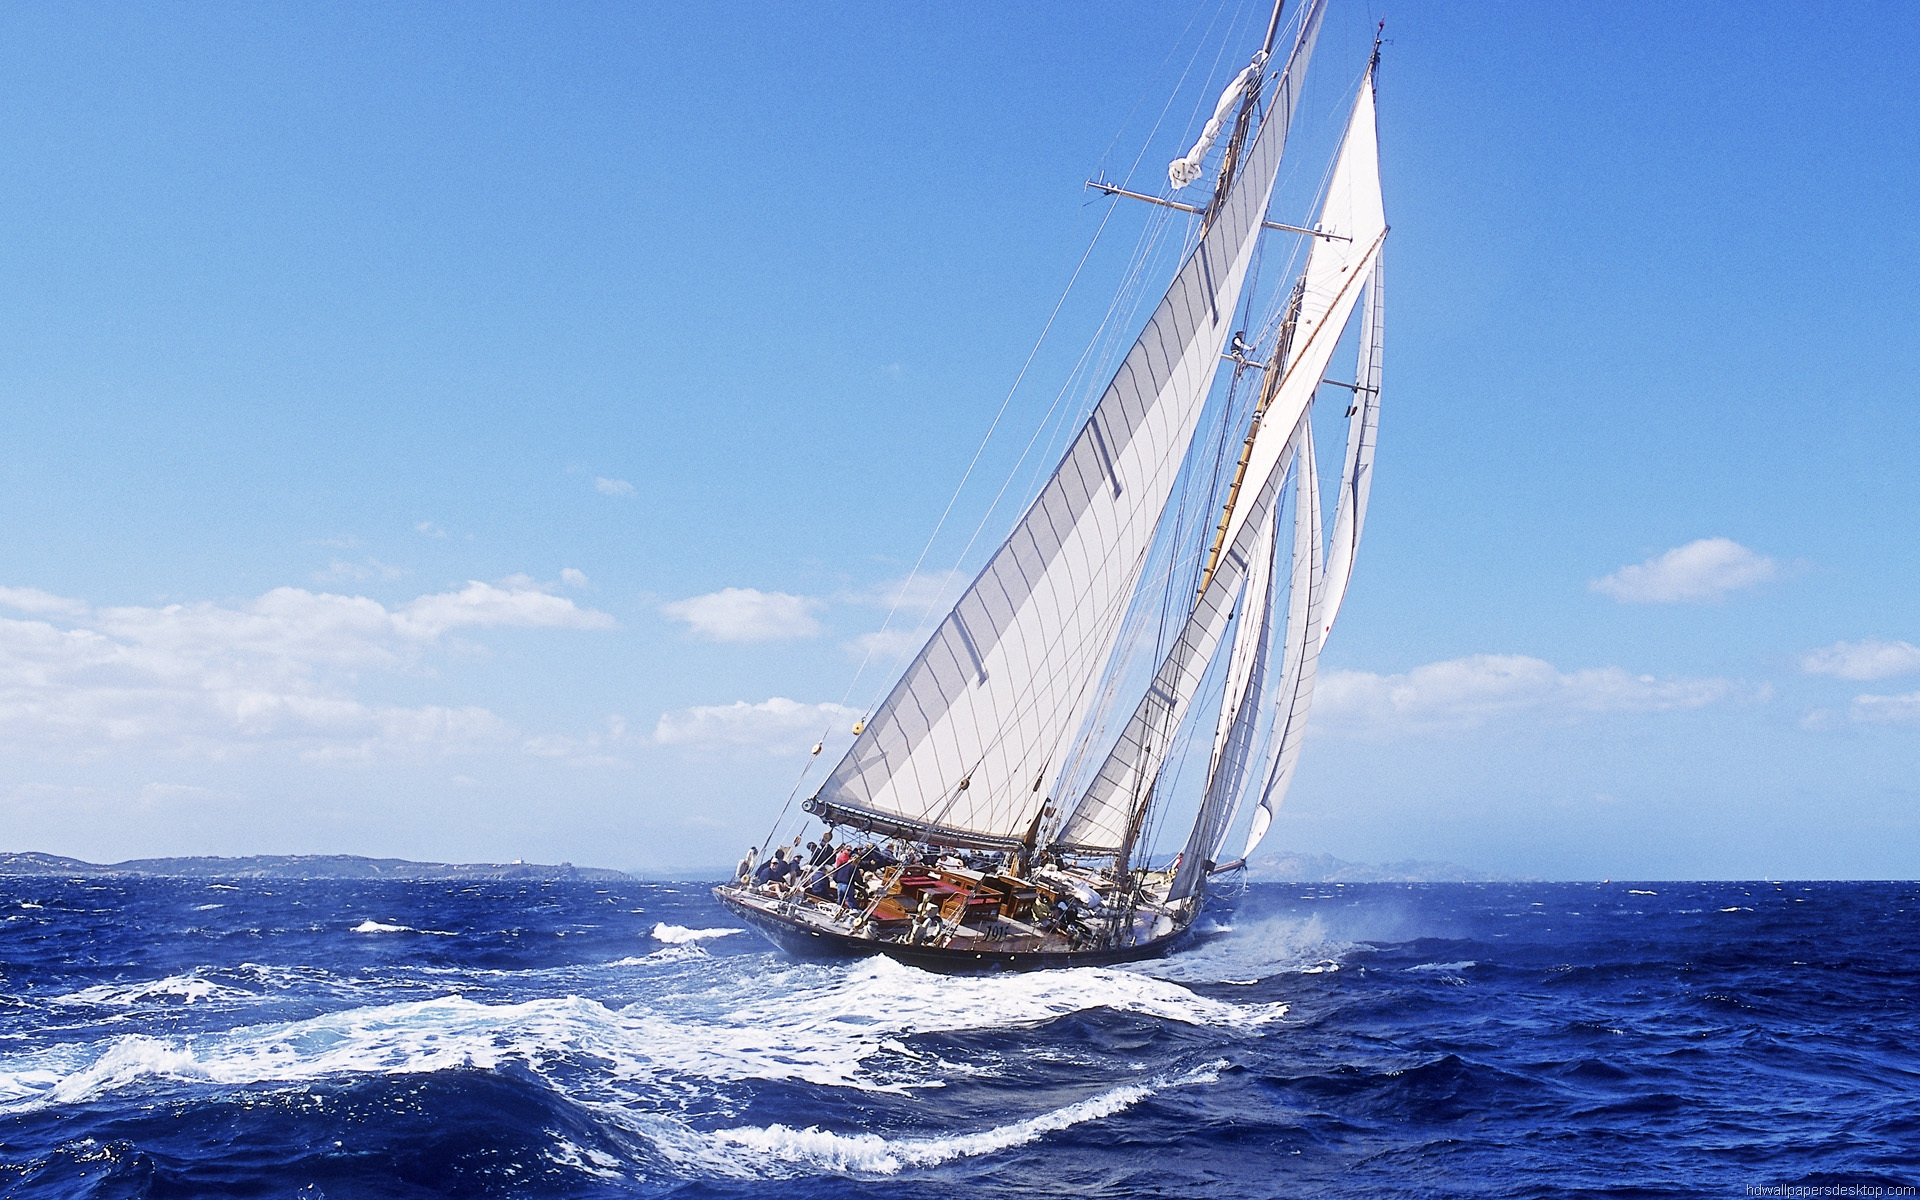 hungry for sailboat wallpaper - photo #26